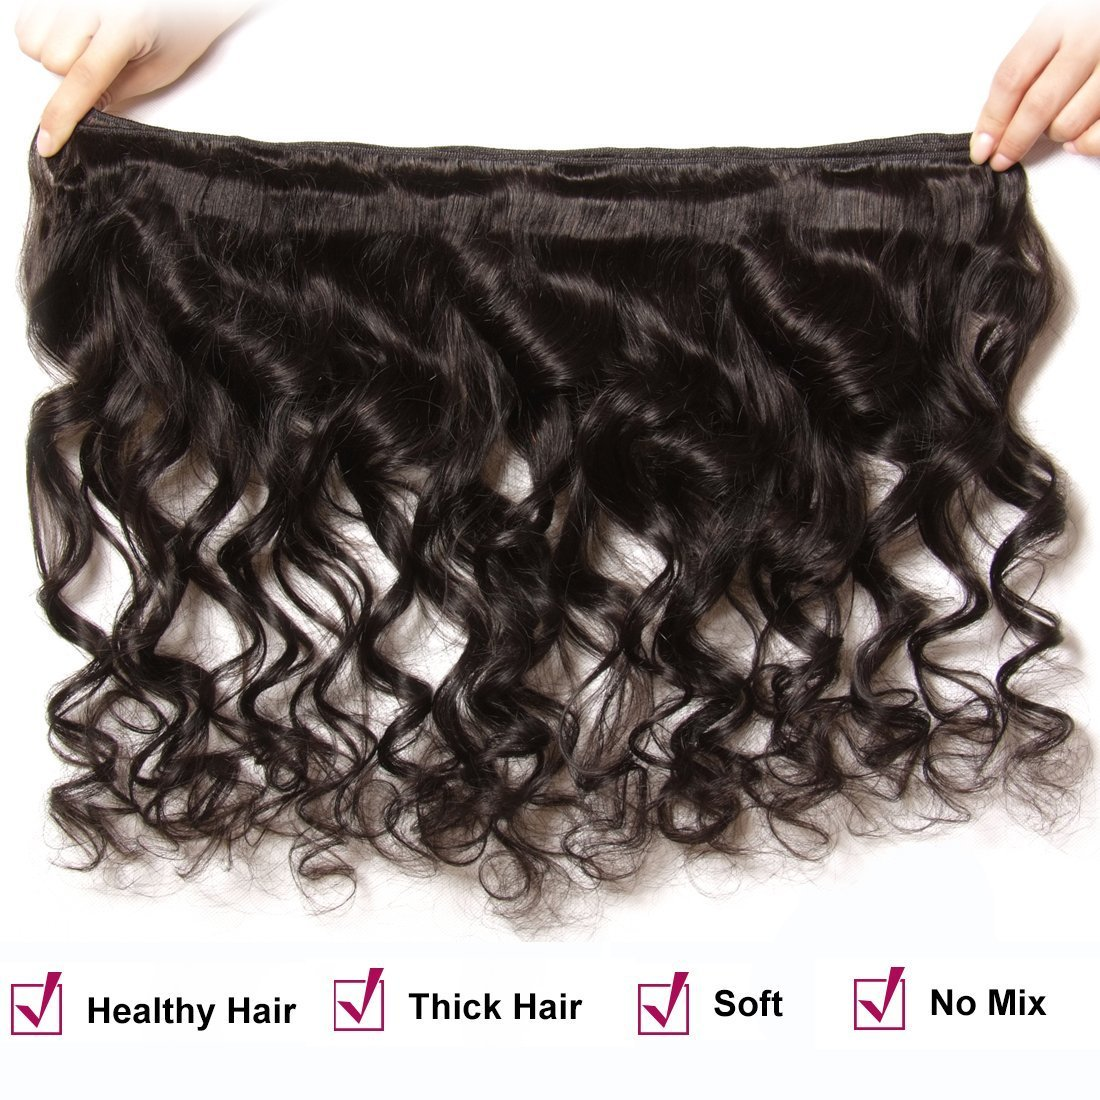 ALI JULIA 8A Brazilian Loose Wave Hair Weave 4 Bundles 100% Unprocessed Virgin Human Hair Weft Extensions 95-100g/pc Natural Color (4PC20 22 24 26) by Yilian (Image #3)